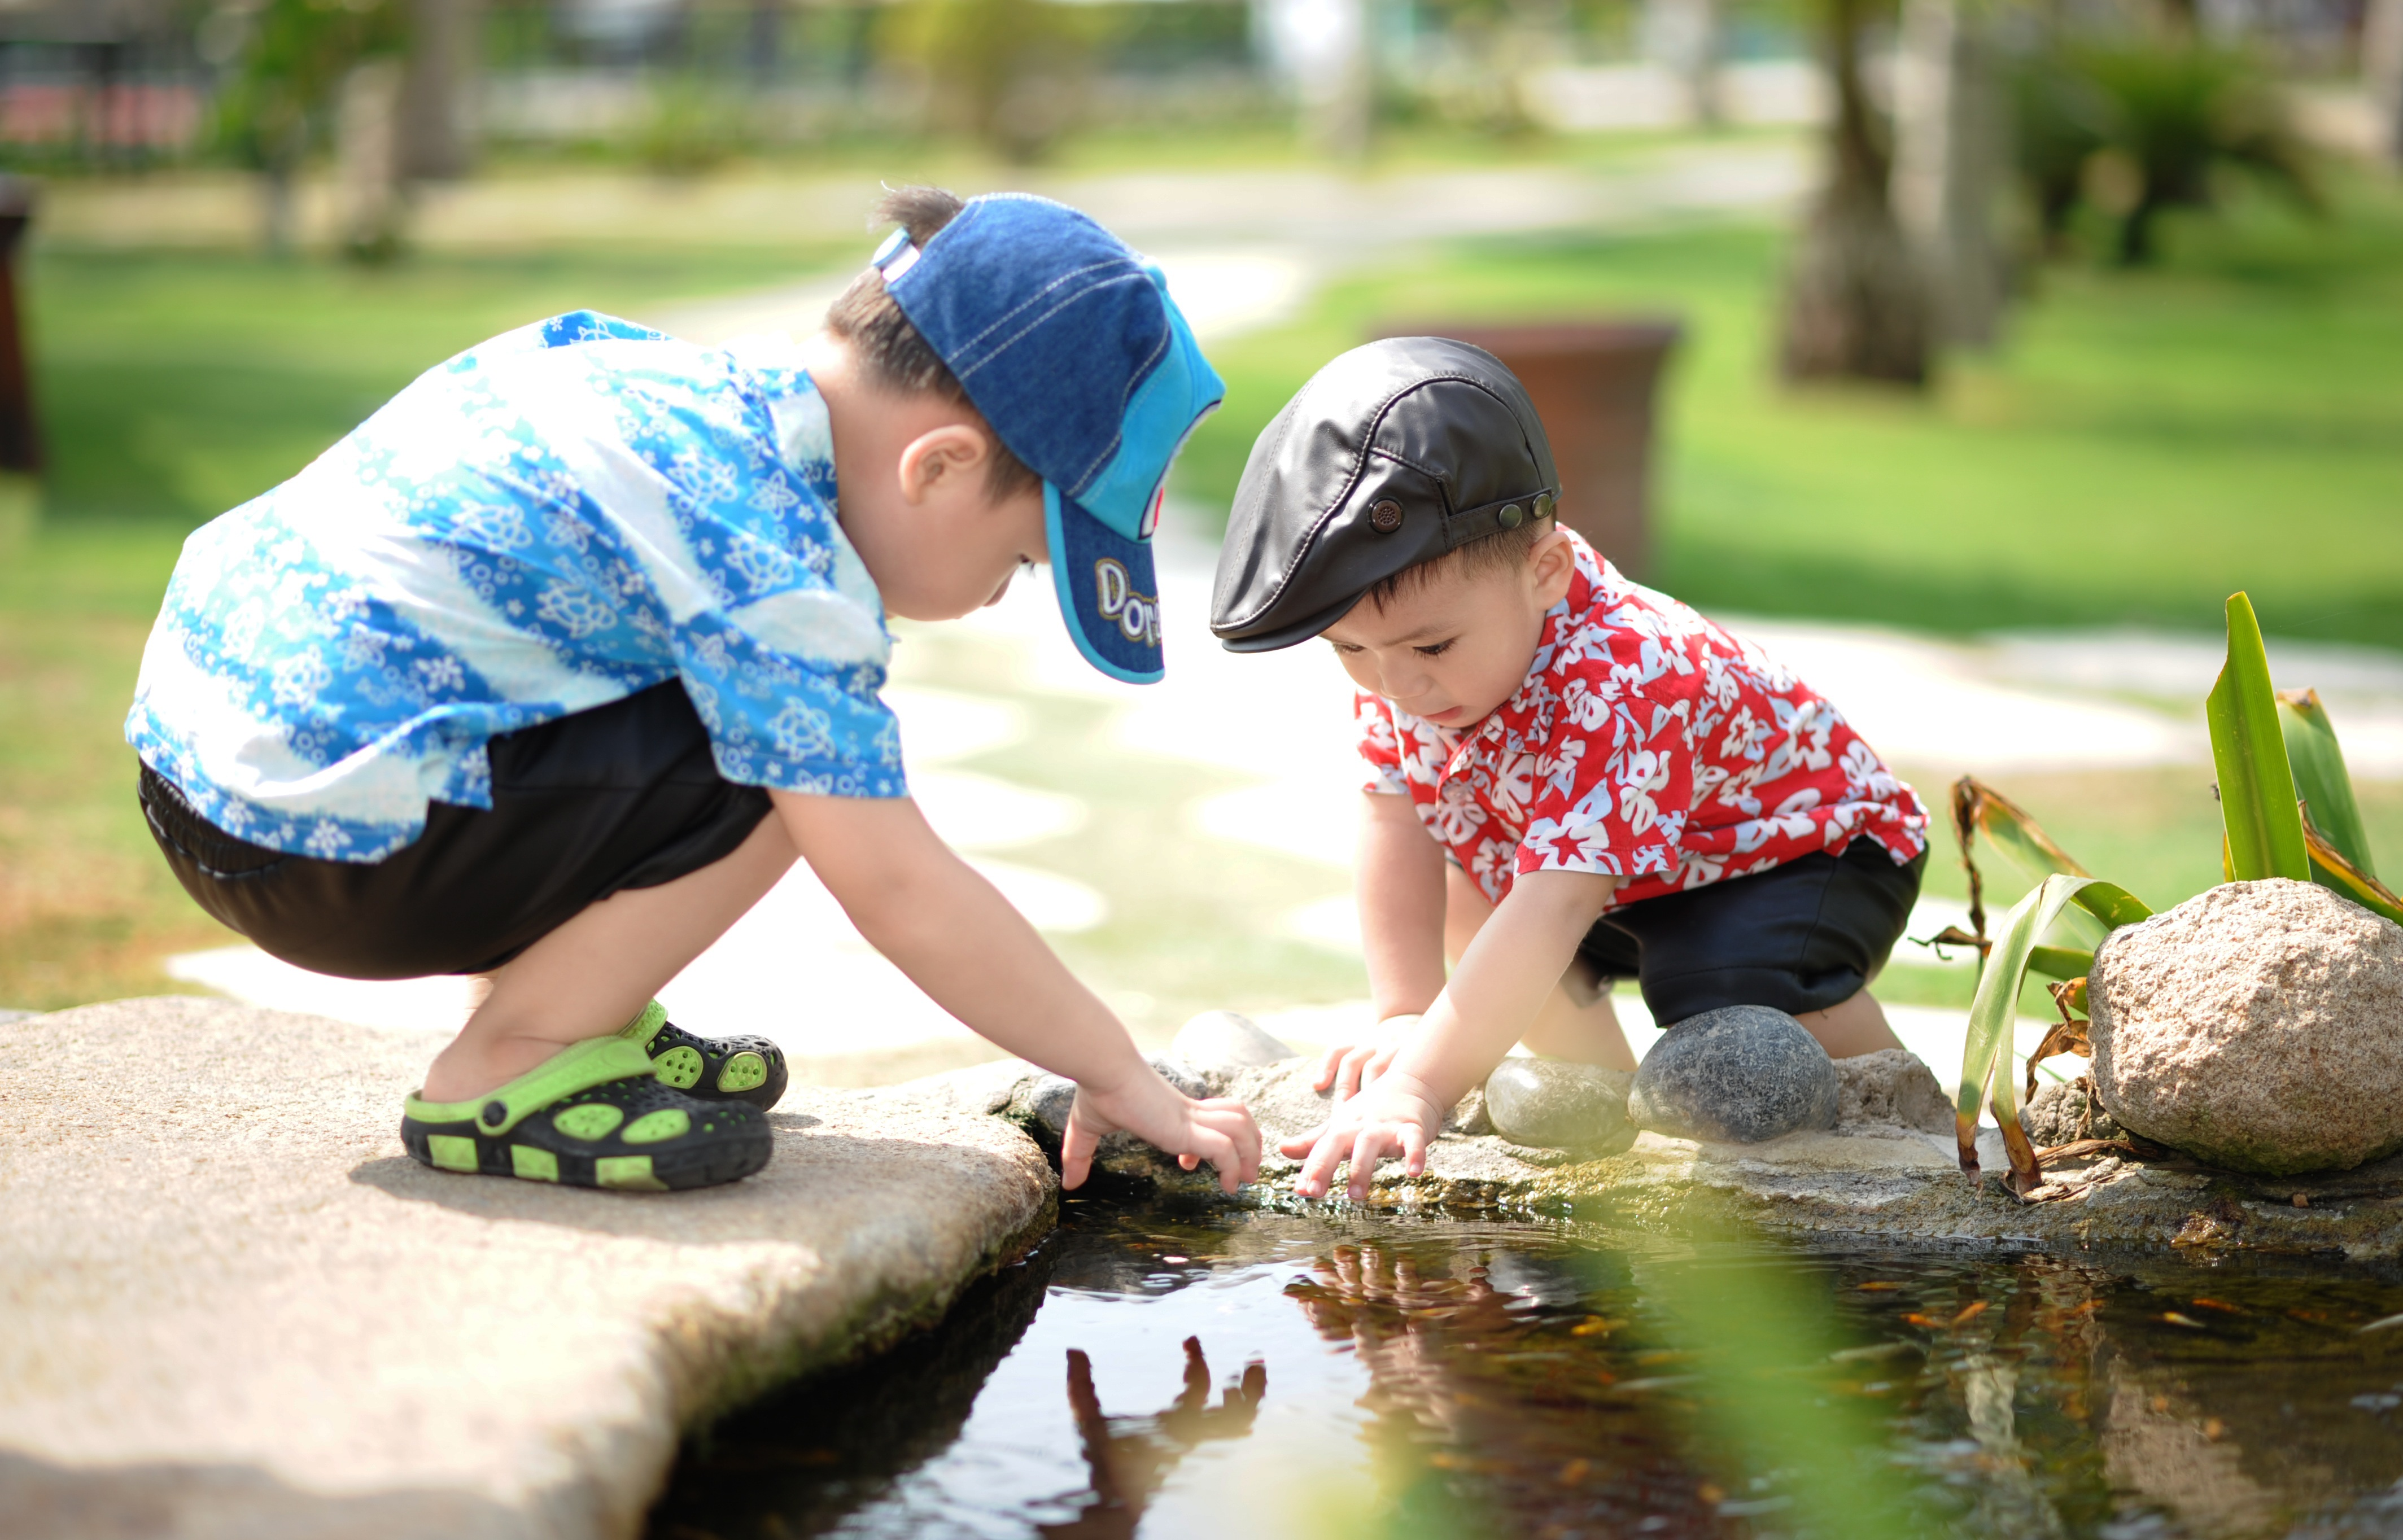 Two young children playing near a fountain